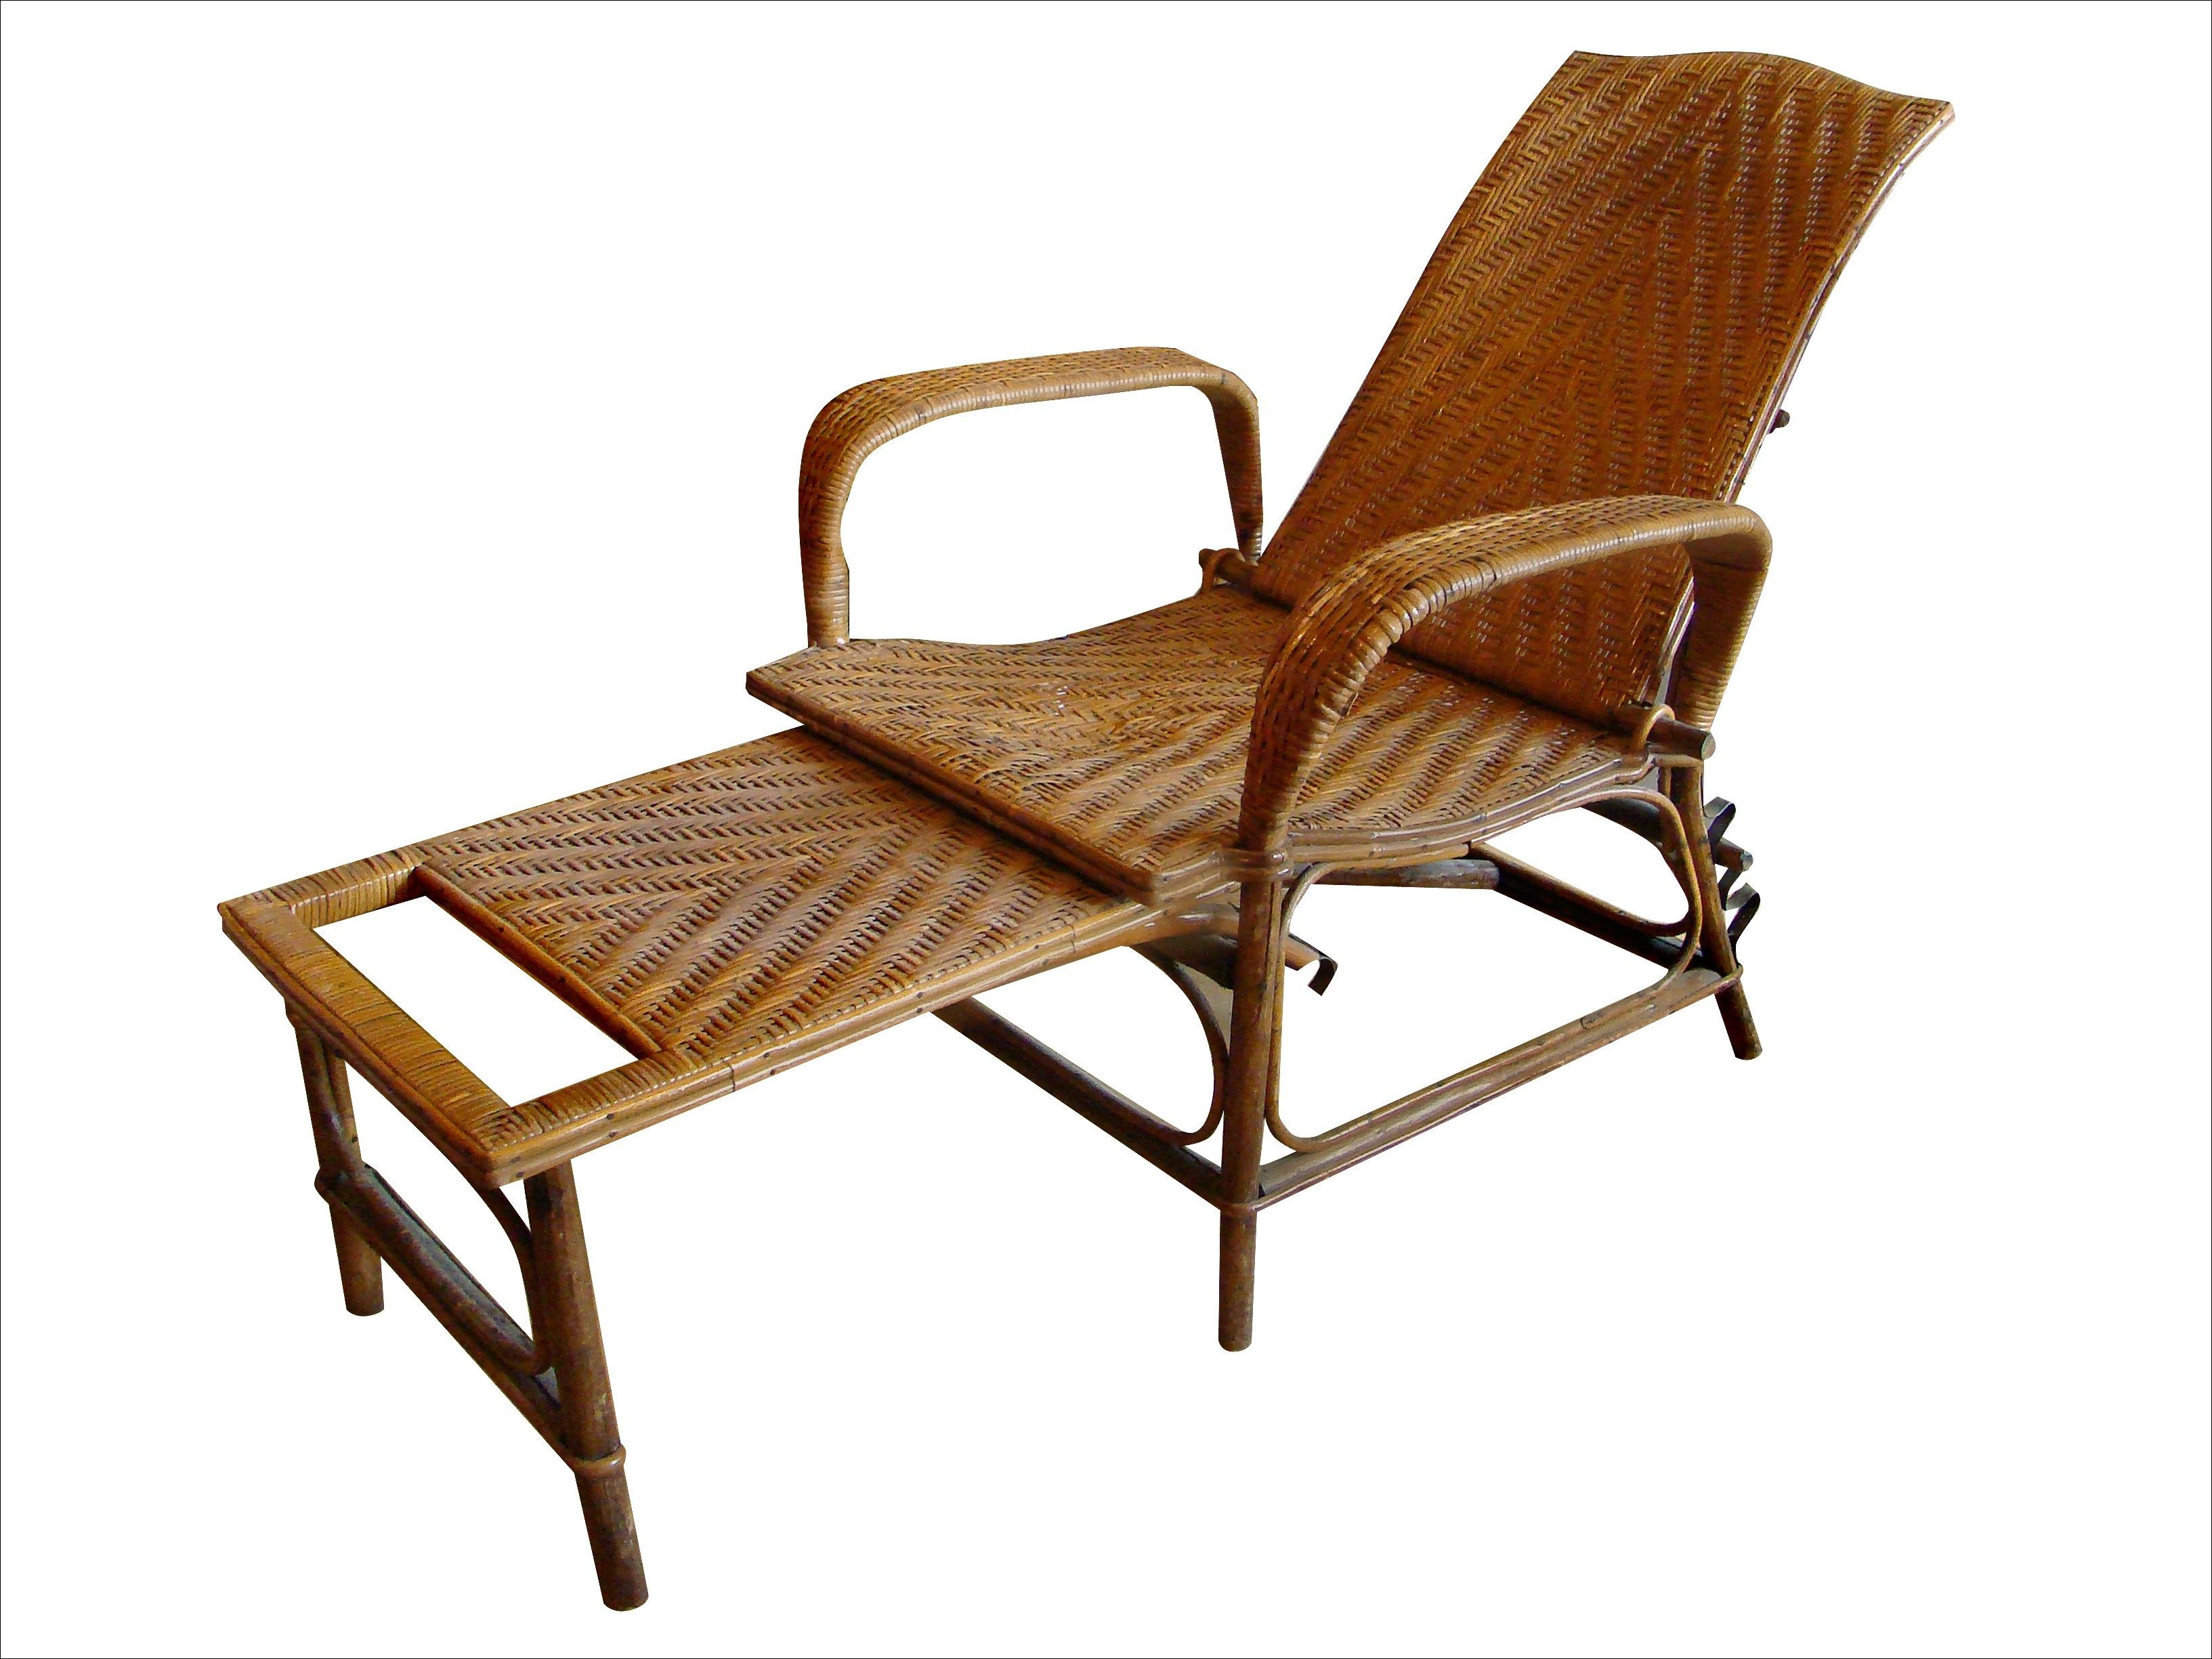 Bamboo Garden Furniture 62 Viralinspirations Wicker Chaise Lounge Outdoor Chairs Modern Chaise Lounge Chairs